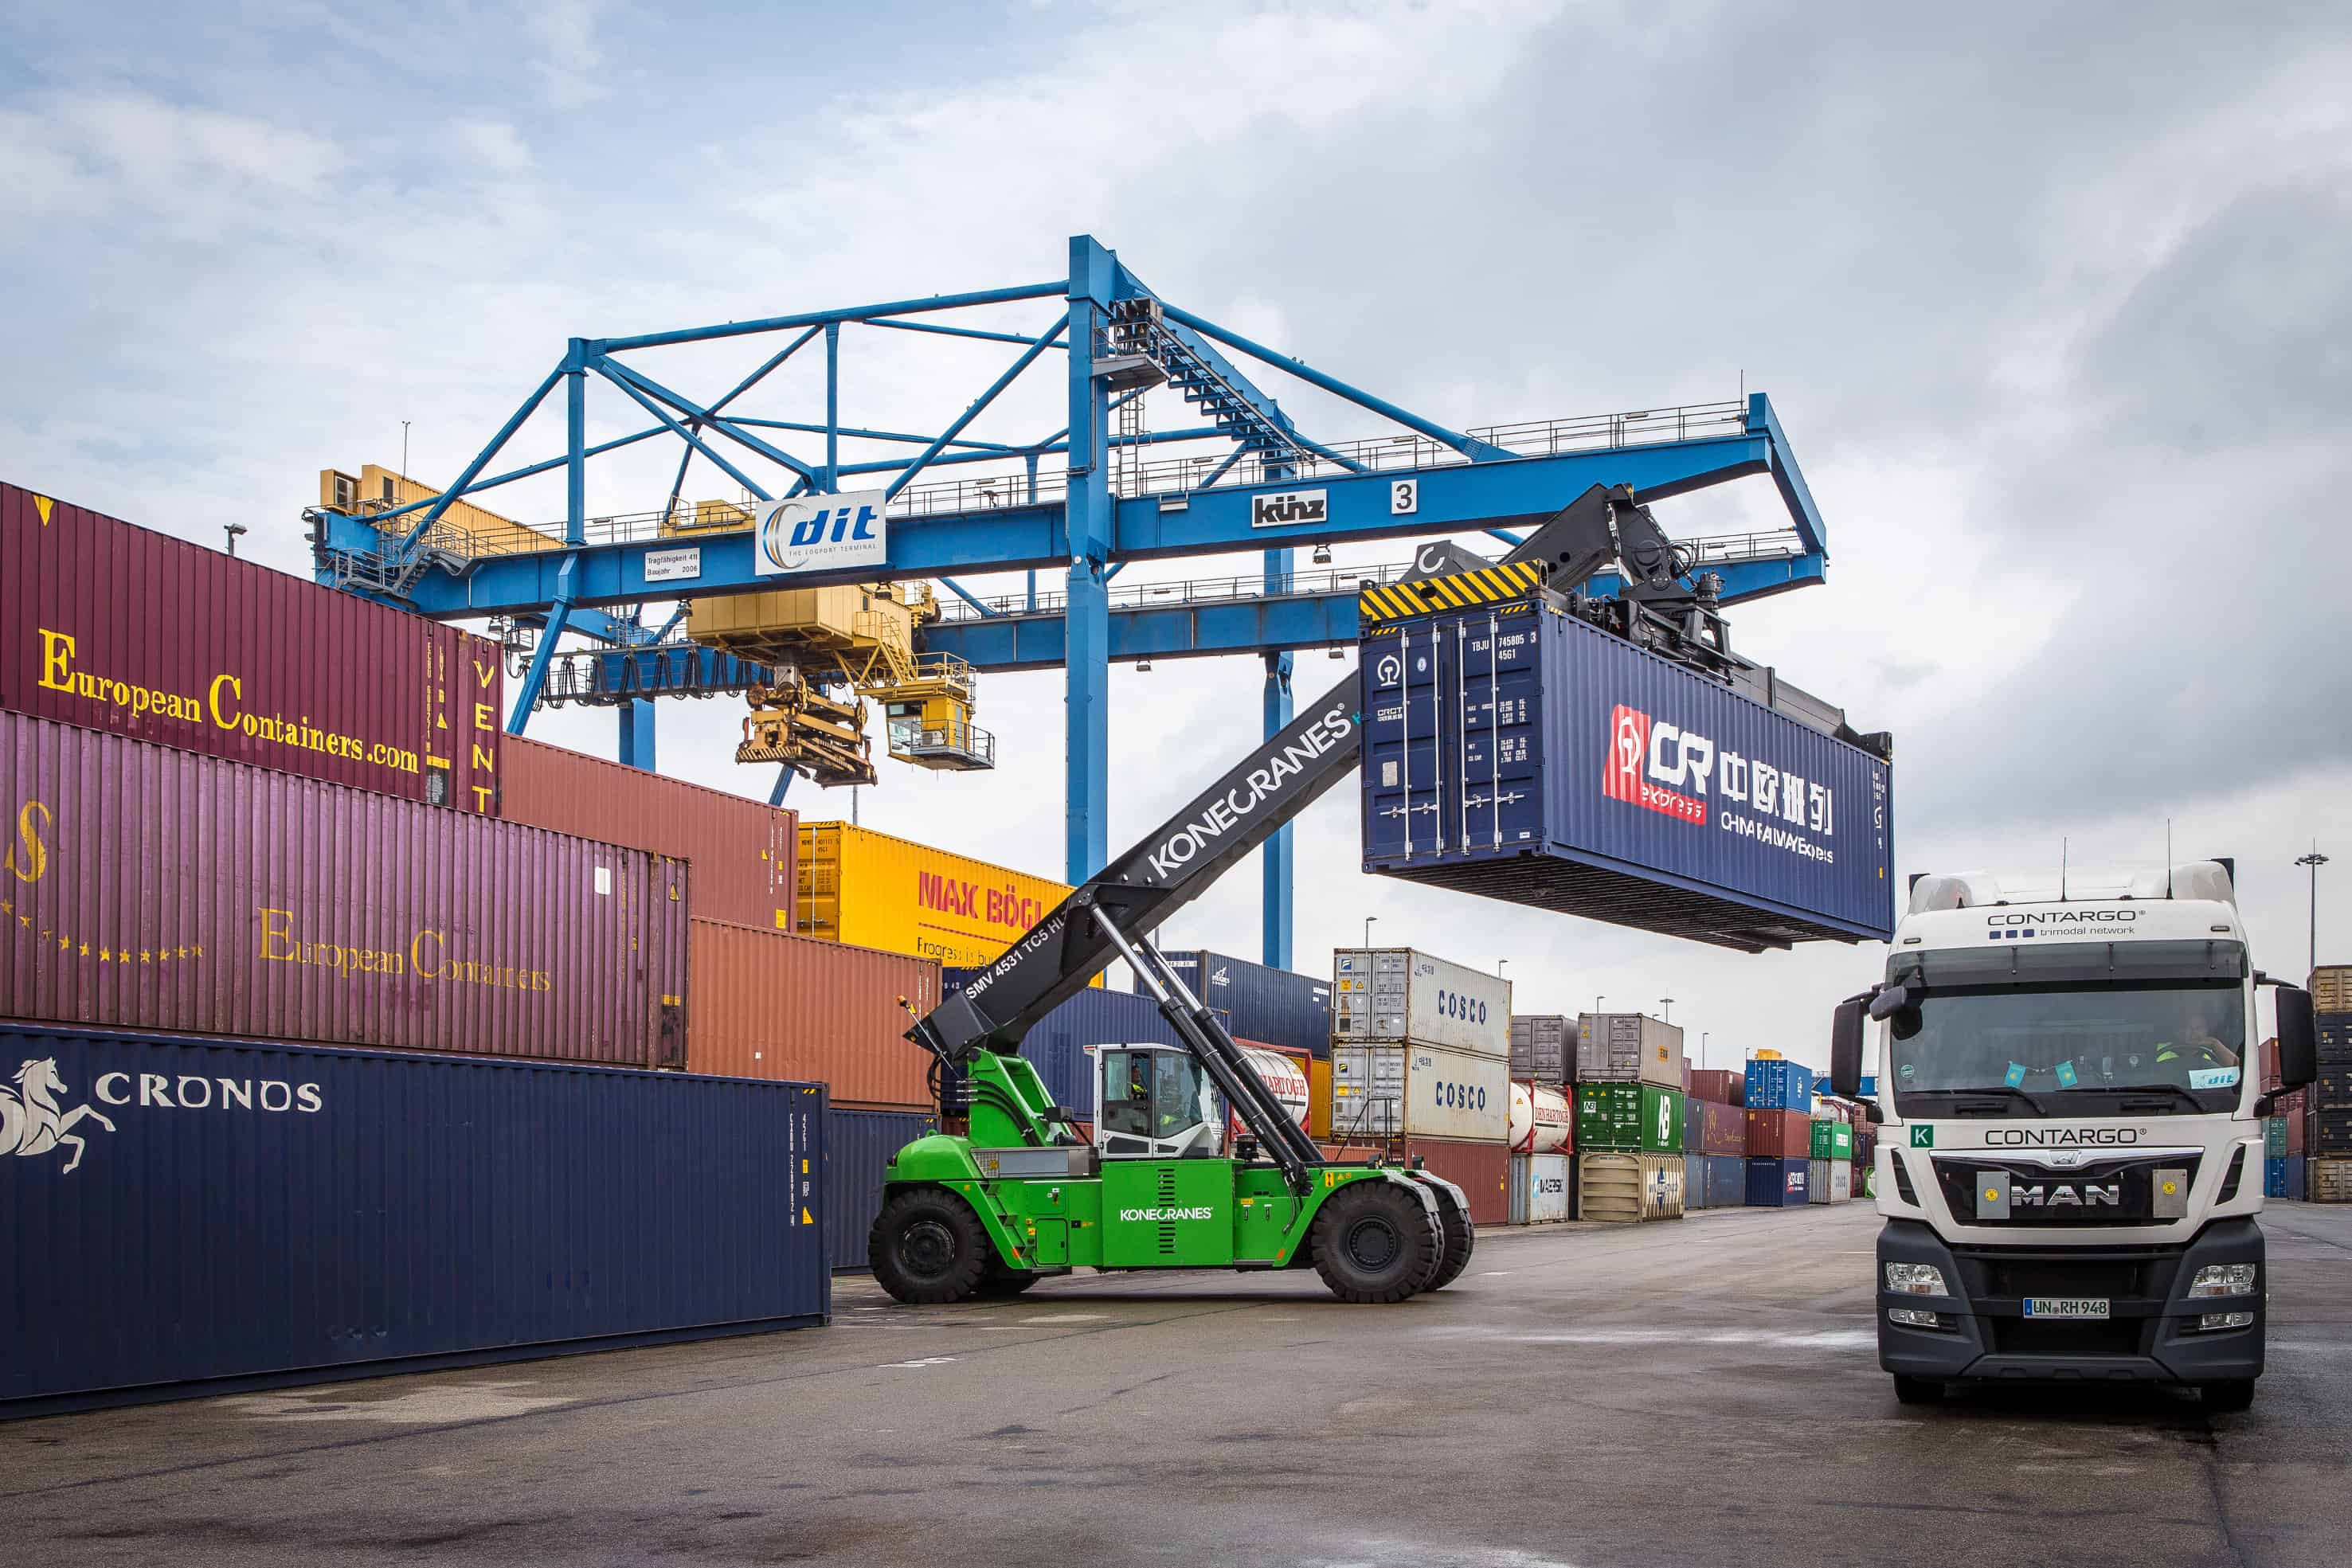 Hybrid reachstacker in operation at Duisburg